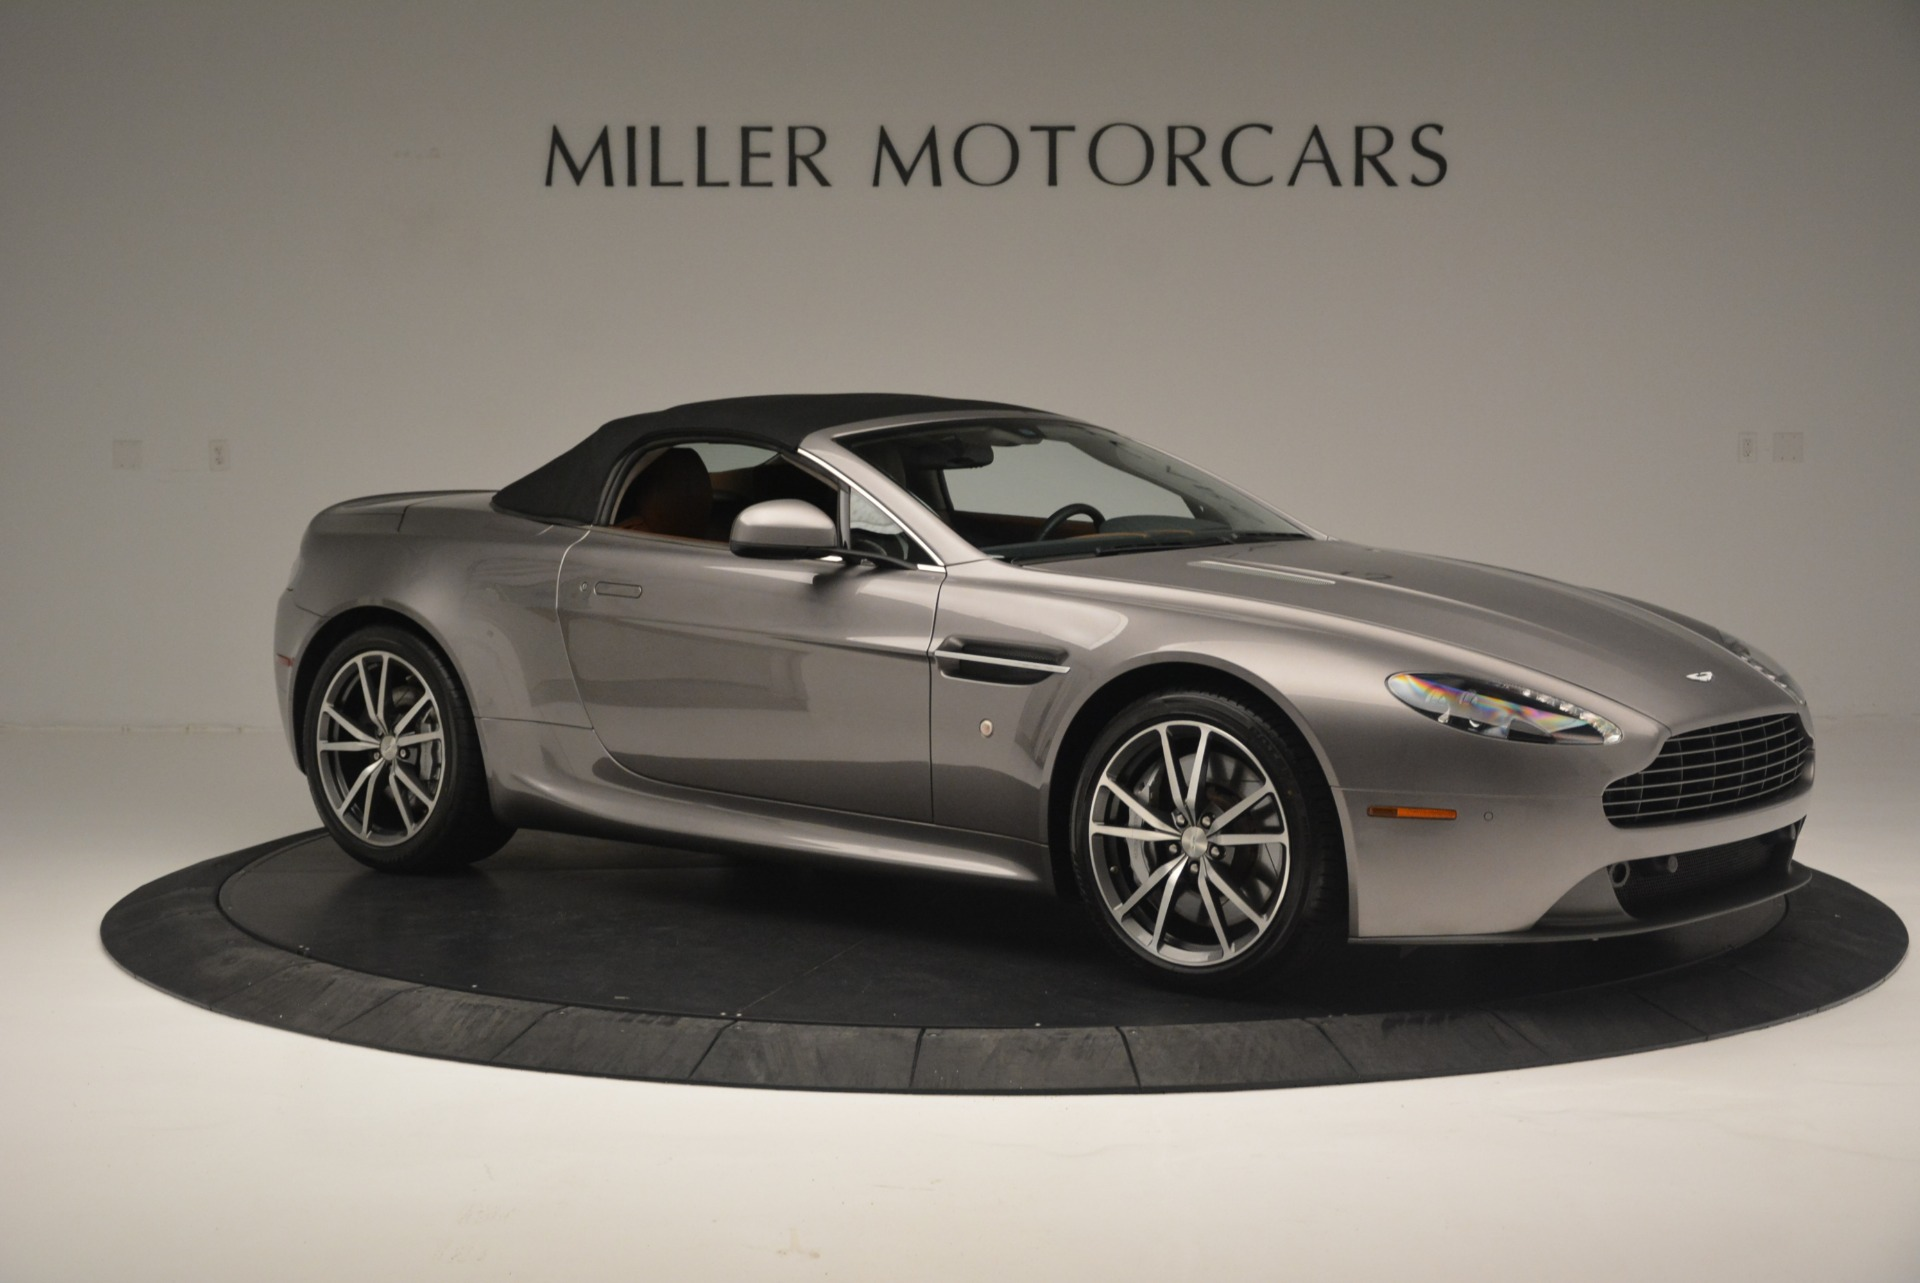 Used 2015 Aston Martin V8 Vantage Roadster For Sale In Greenwich, CT 2463_p17